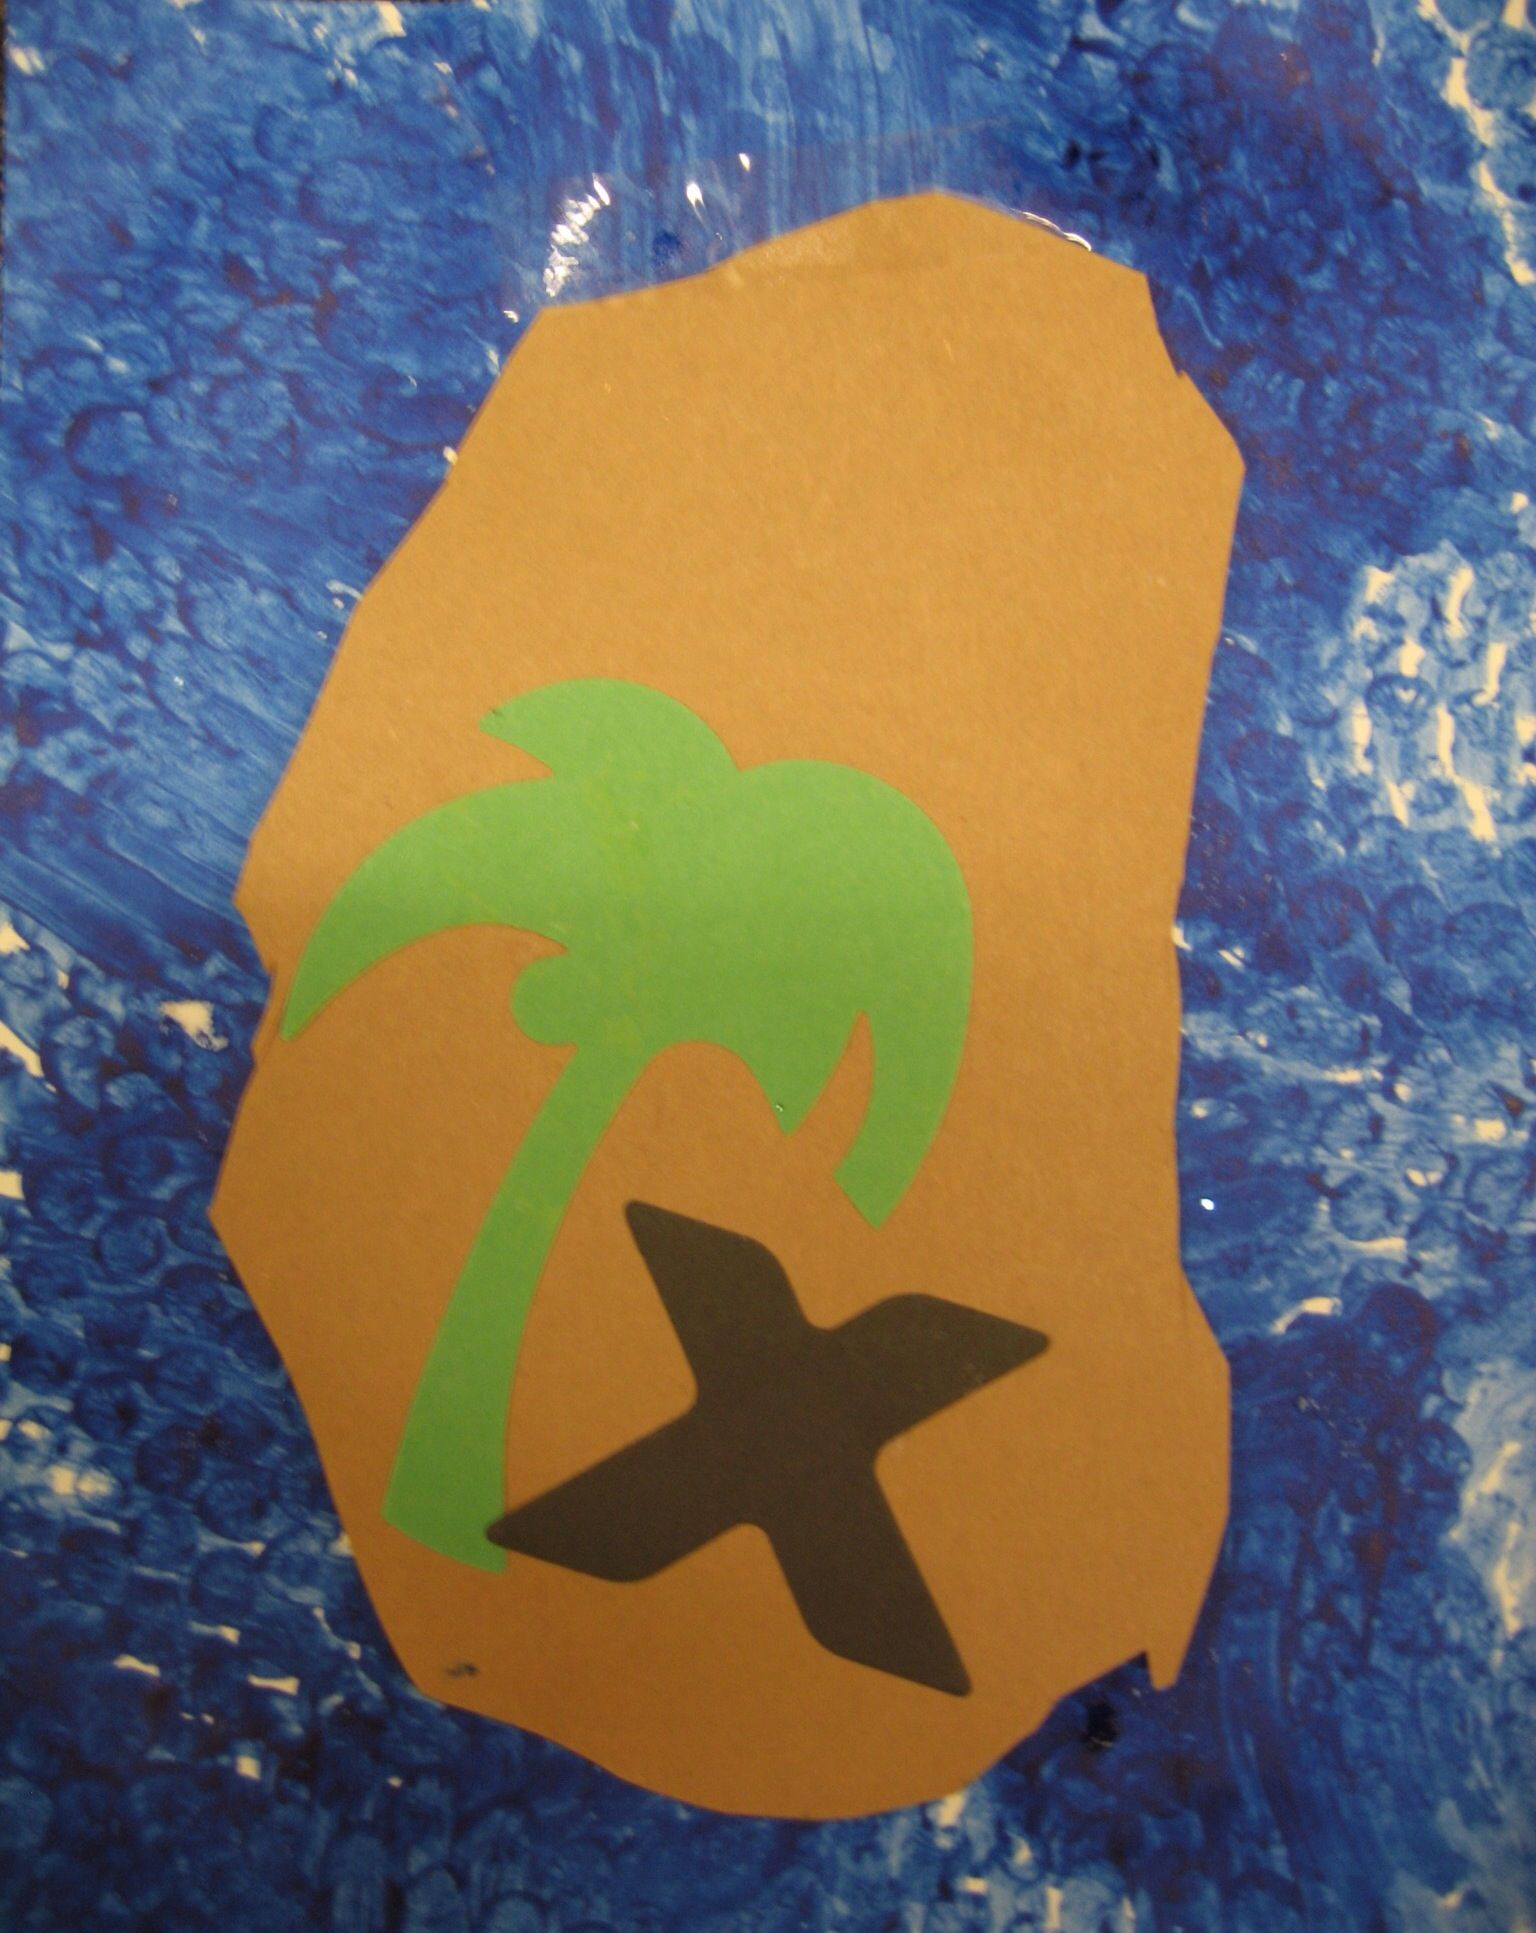 Letter X Marks The Spot Treasure Map There Is A Plastic